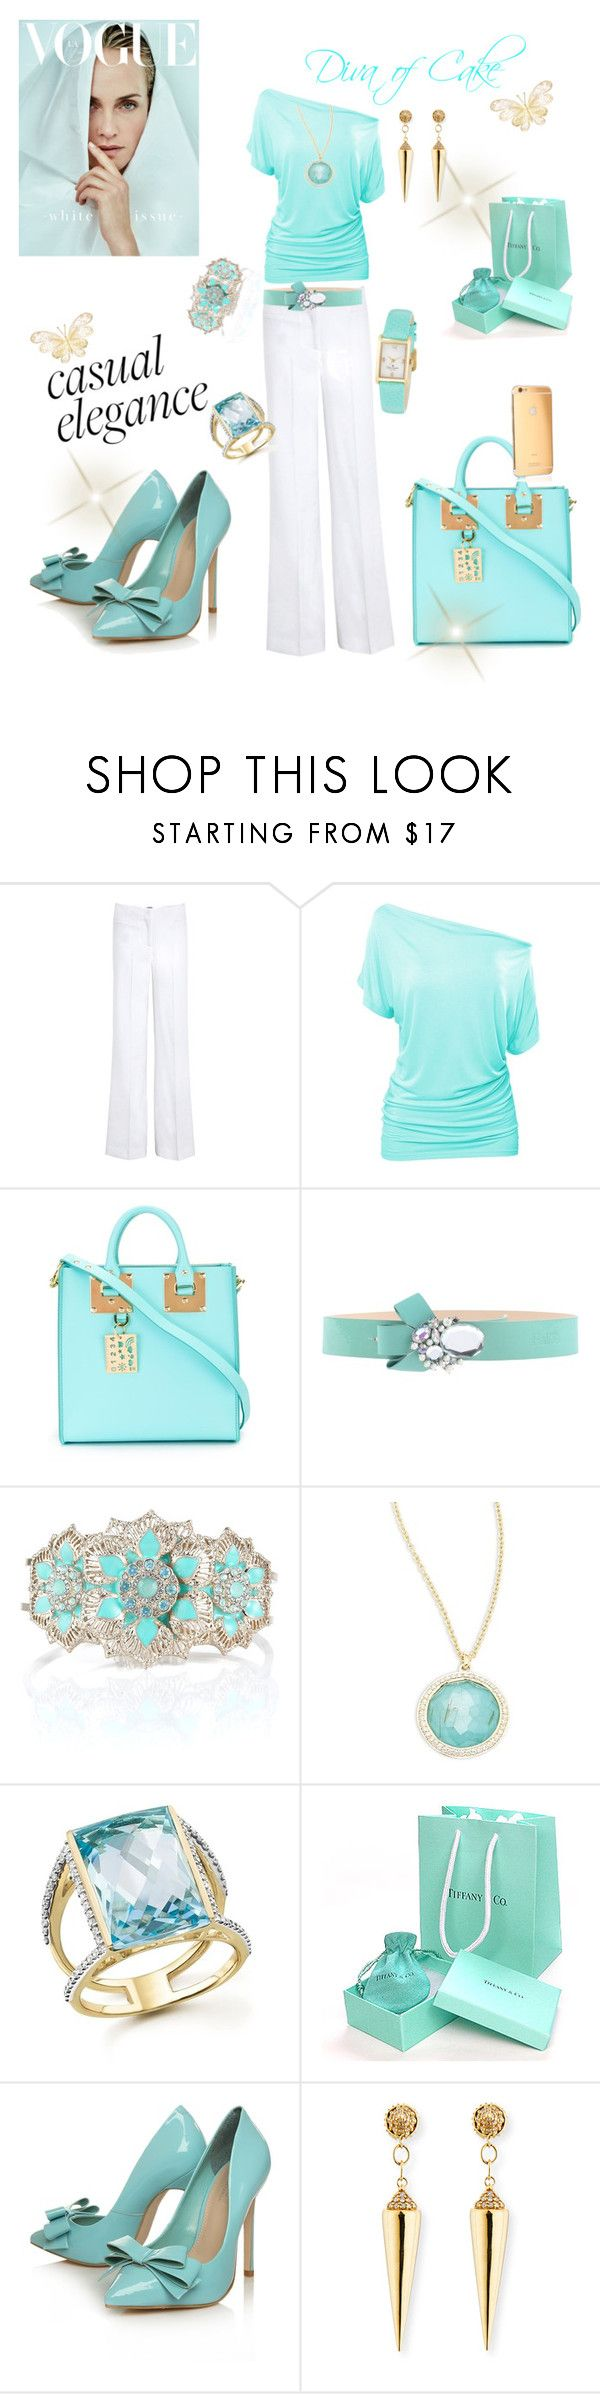 """""""Tiffany blue white and gold outfit"""" by Diva of Cake  featuring Farhi by Nicole Farhi, Sophie Hulme, Blugirl Folies, Kate Spade, Accessorize, Ippolita, Bloomingdale's, Carvela Kurt Geiger, Valletta and Sydney Evan"""